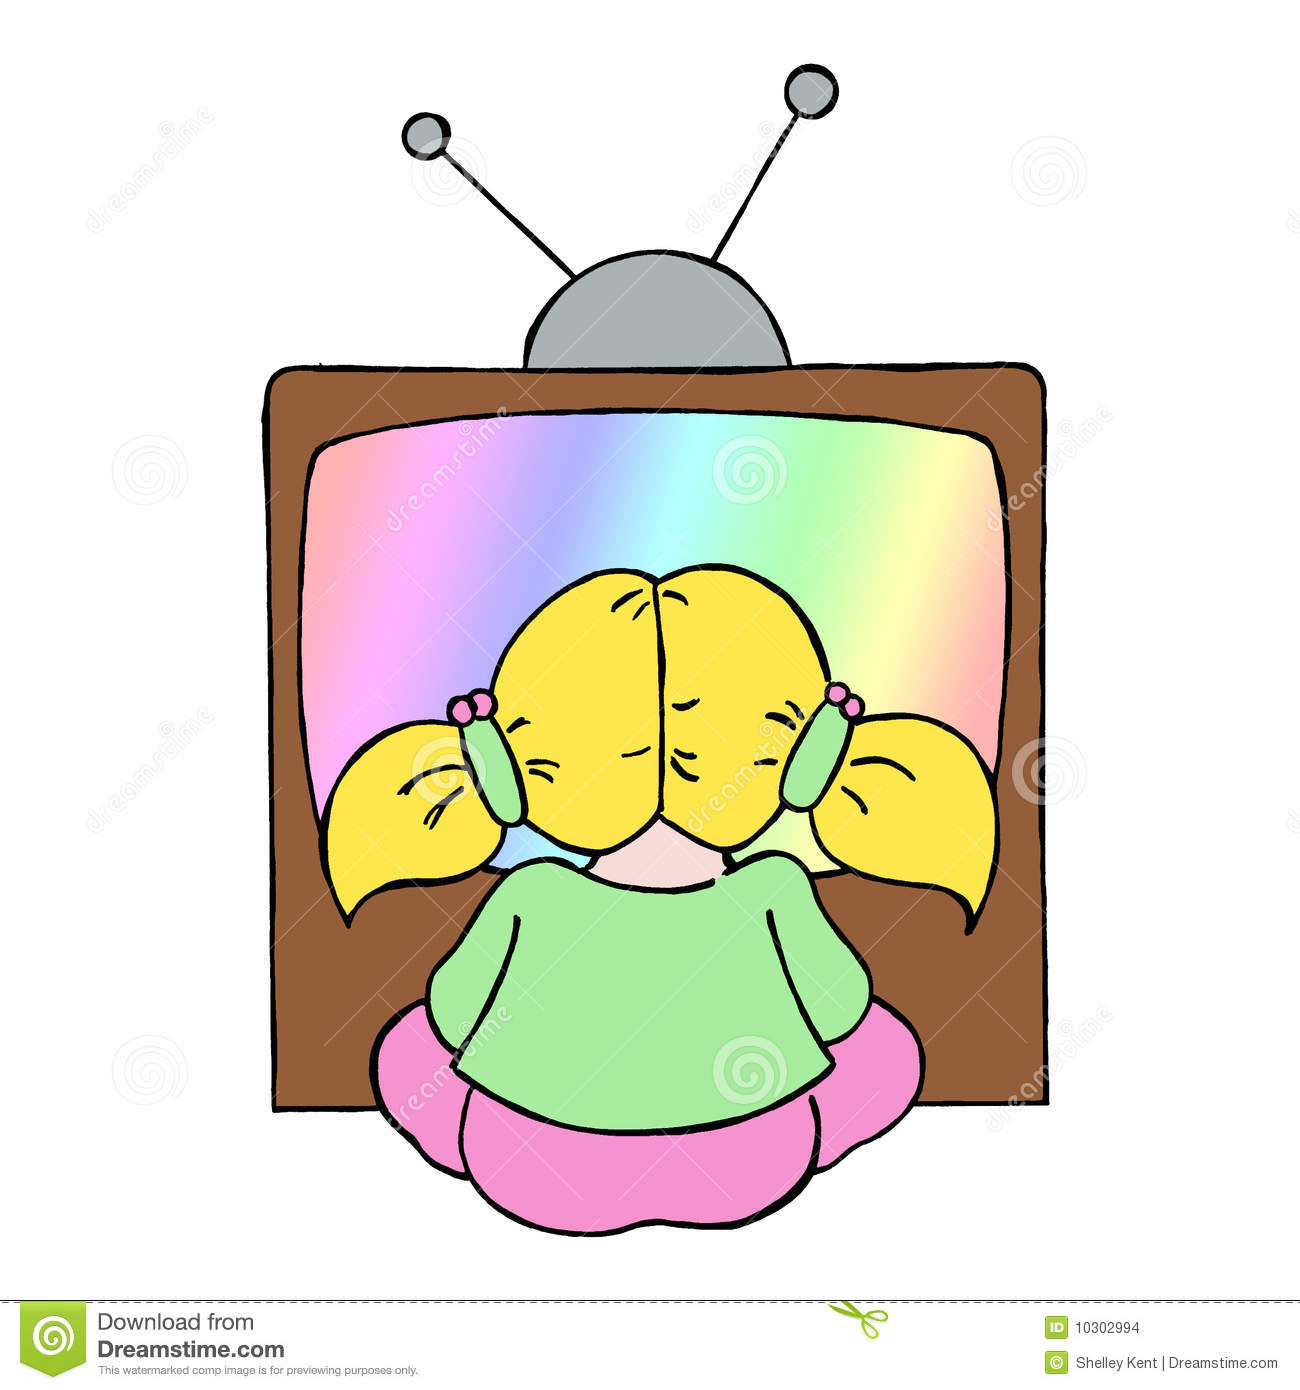 Watch clipart watch television Clipart Watching Images Free Clipart